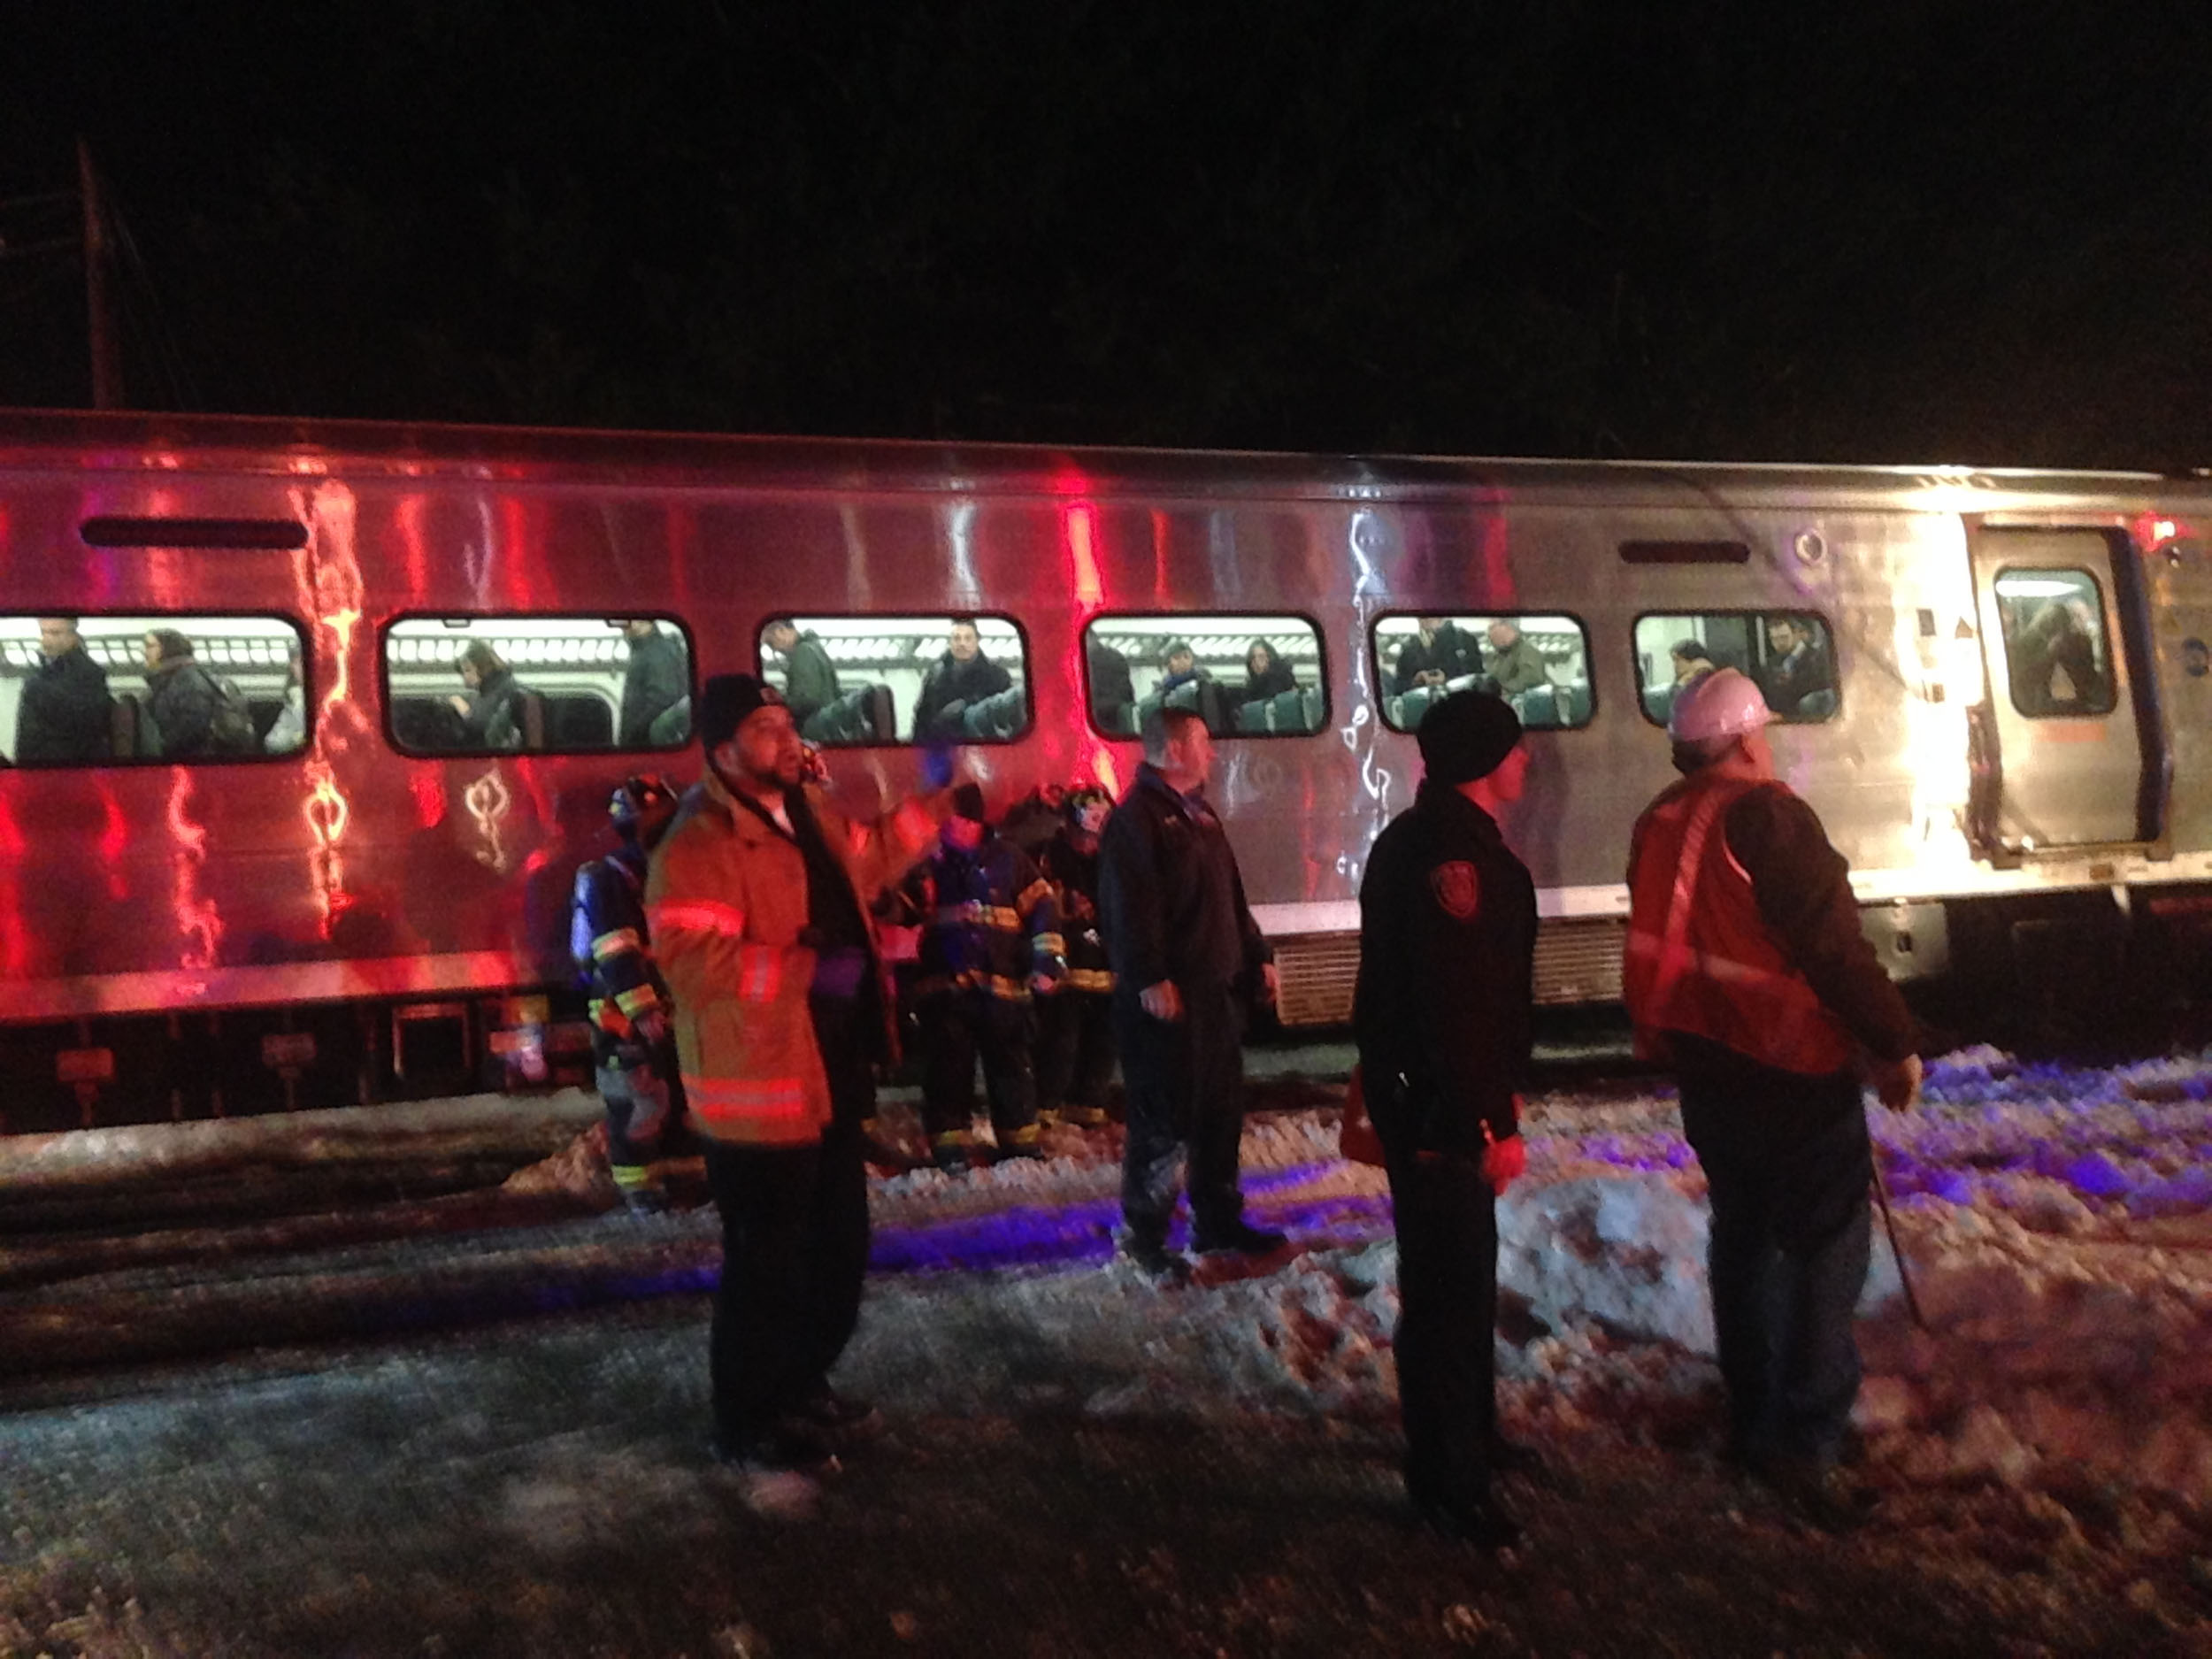 First responders work at the scene of a train accident on in Valhalla, N.Y. on Feb. 3, 2015.